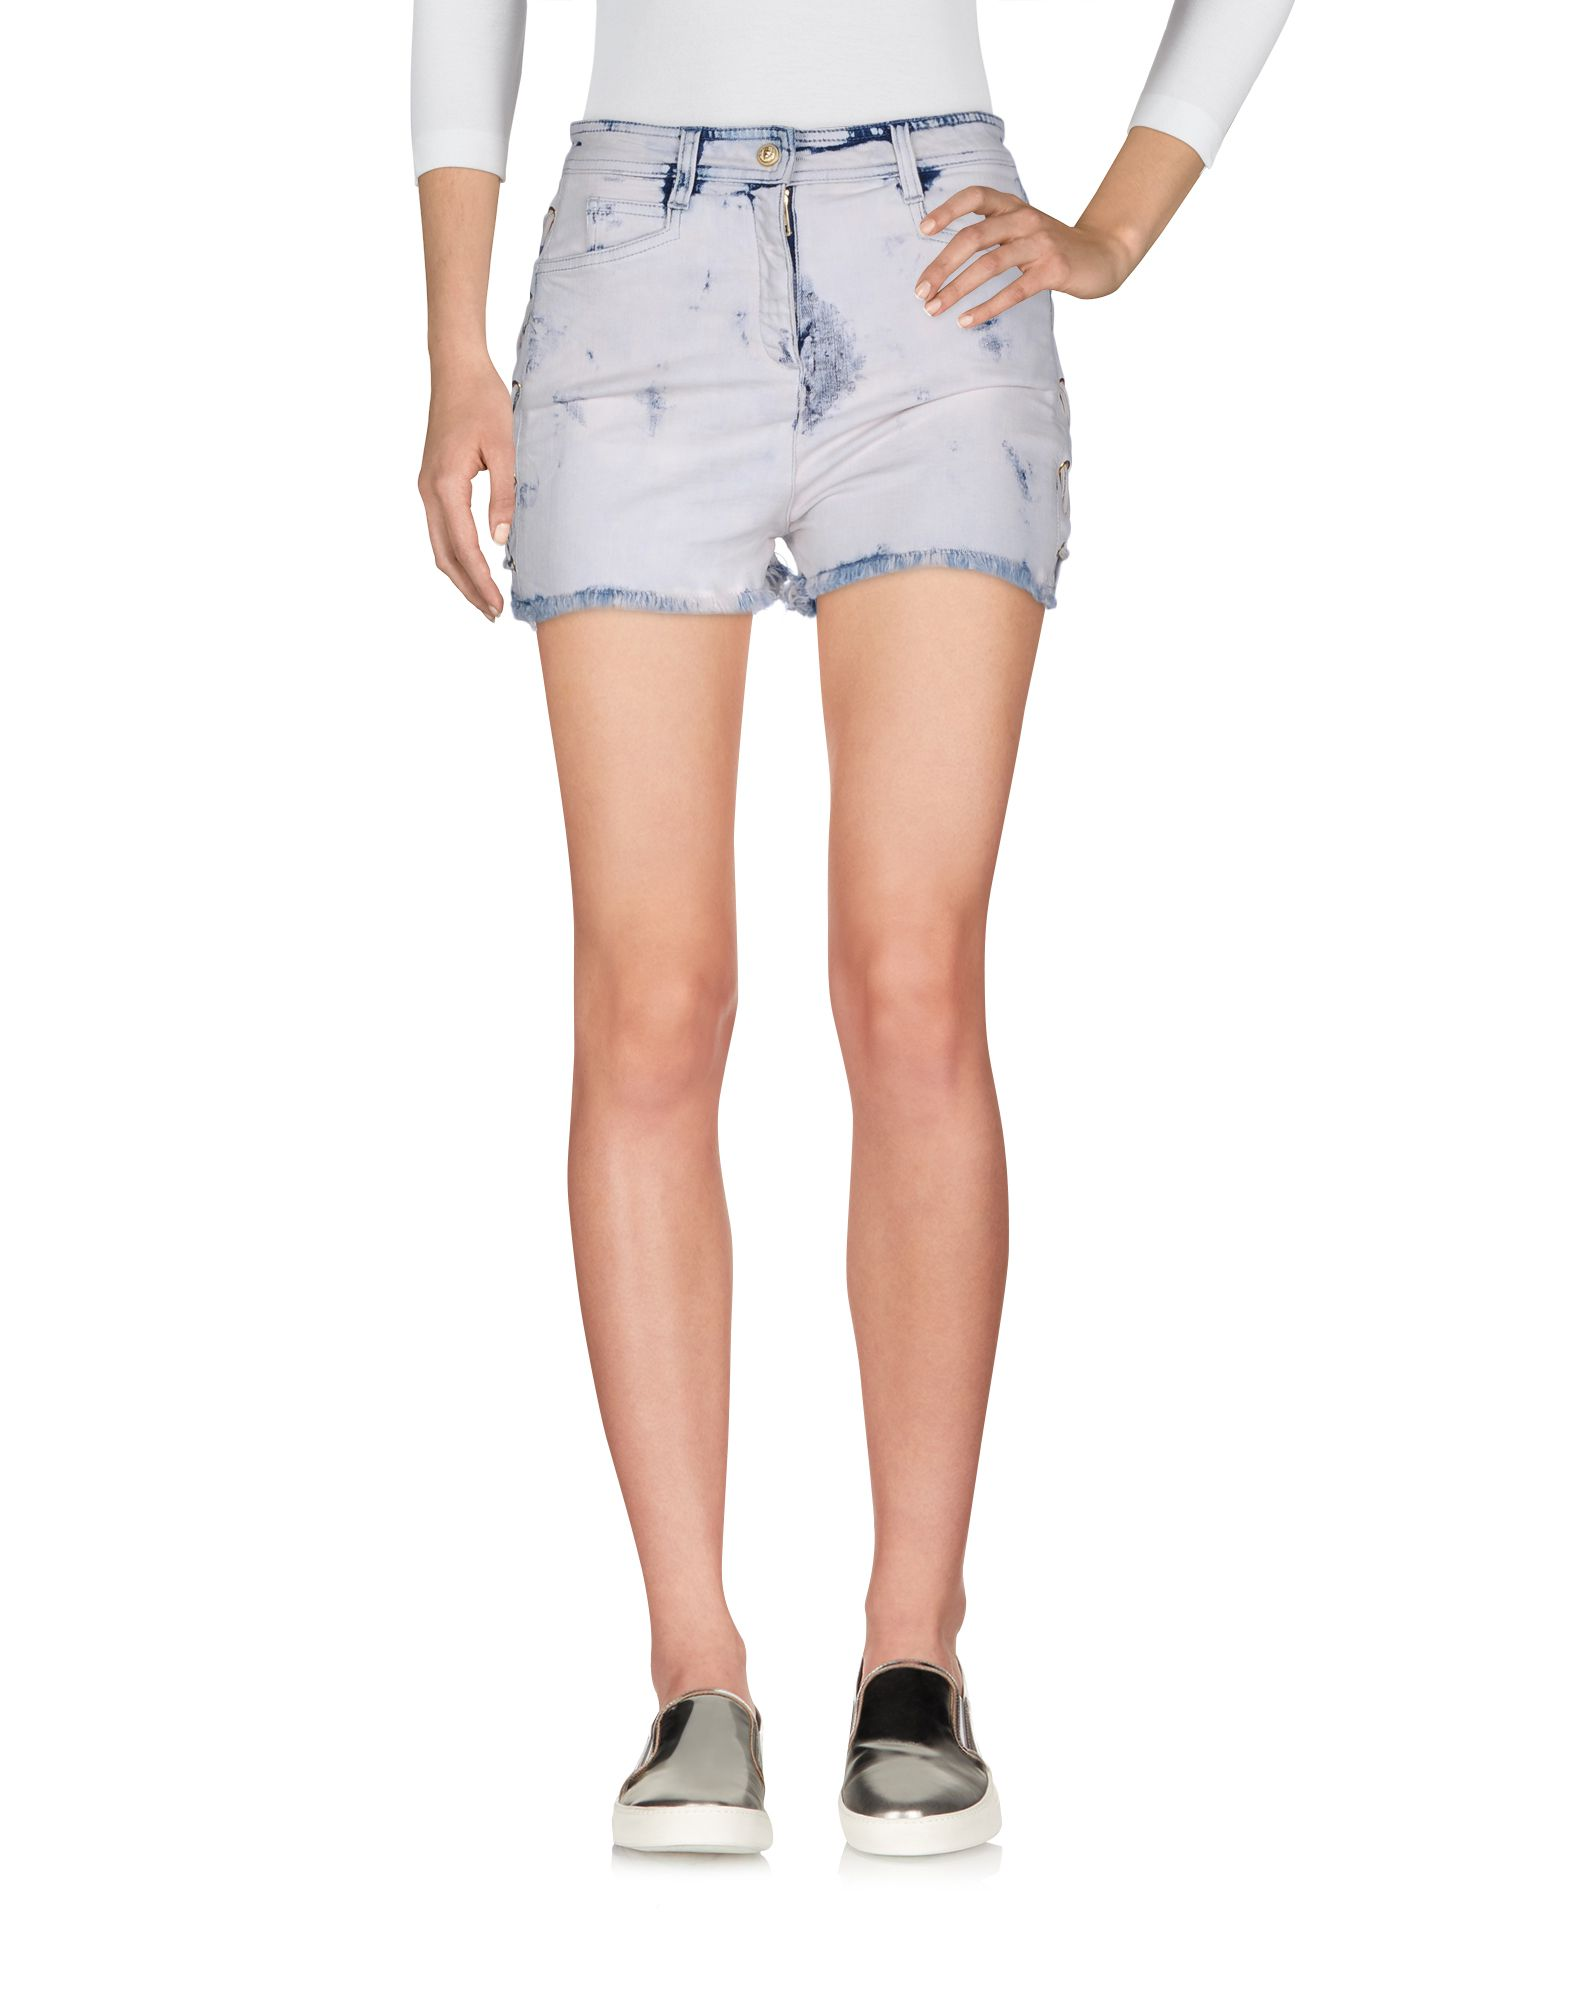 BALMAIN Denim shorts. denim, fringe, lacing, solid color, colored wash, stained effect, mid rise, front closure, snap-buttons, zip, multipockets, stretch. 98% Cotton, 2% Elastane